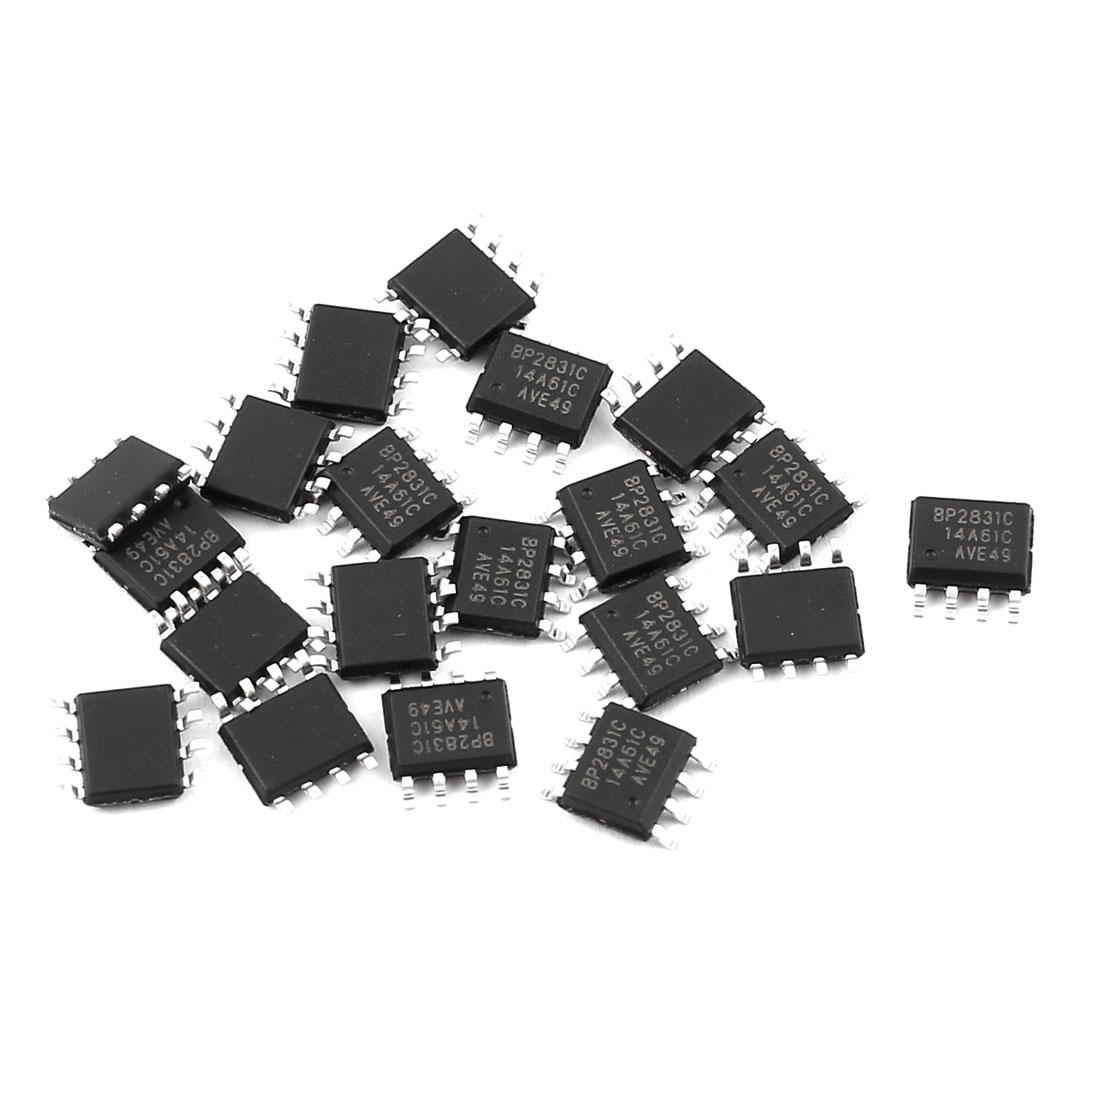 20Pcs BP2831C SOP-8 SMD SMT Type PCB Surface Mount LED Driver Circuit Module Integrated Circuit IC Chip